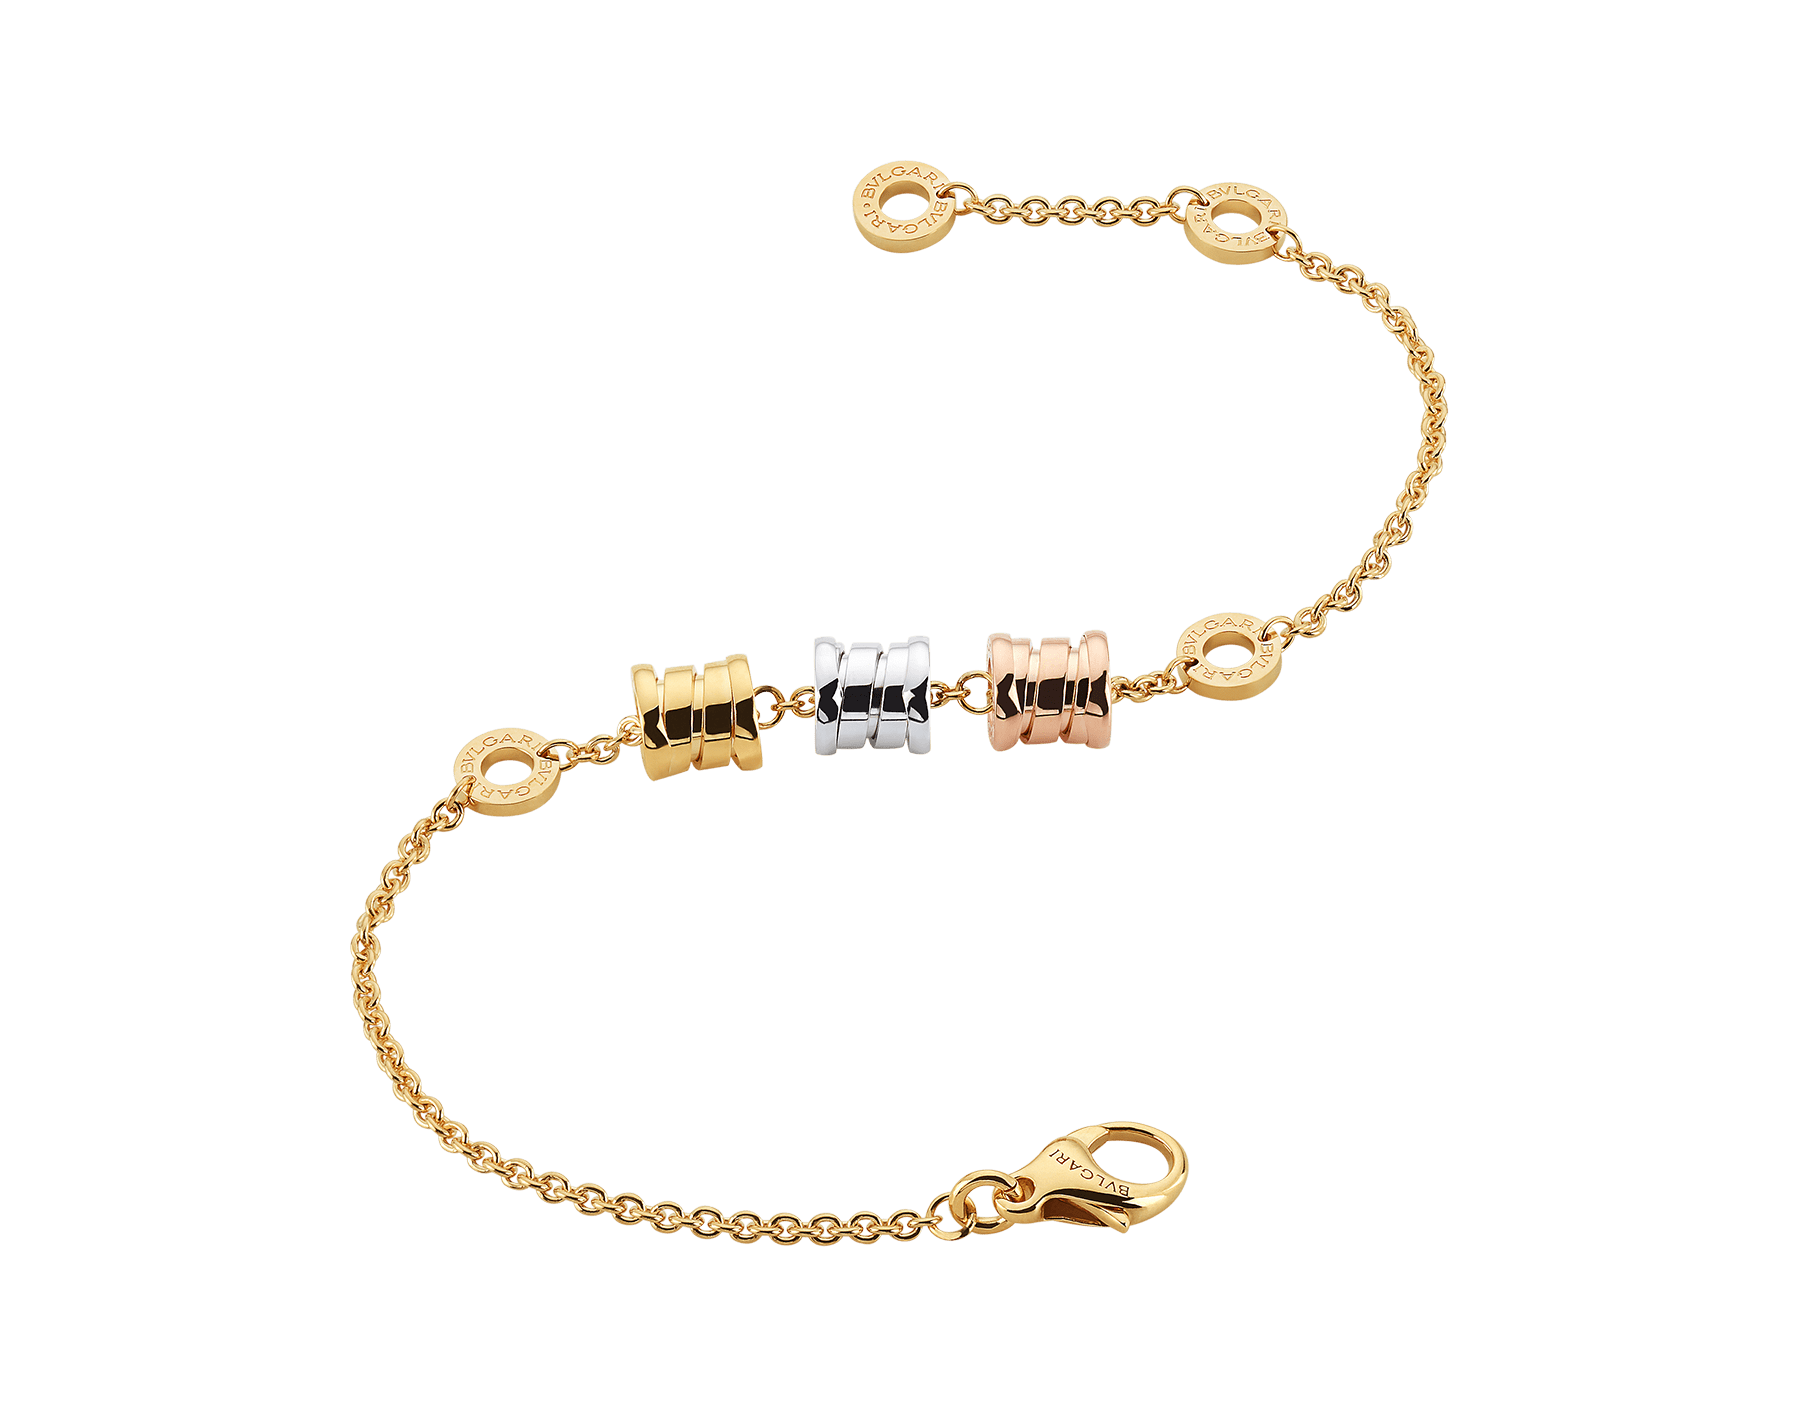 B.zero1 soft bracelet with 18 kt yellow gold chain and three spirals in yellow, white and rose 18 kt gold. BR853666 image 2